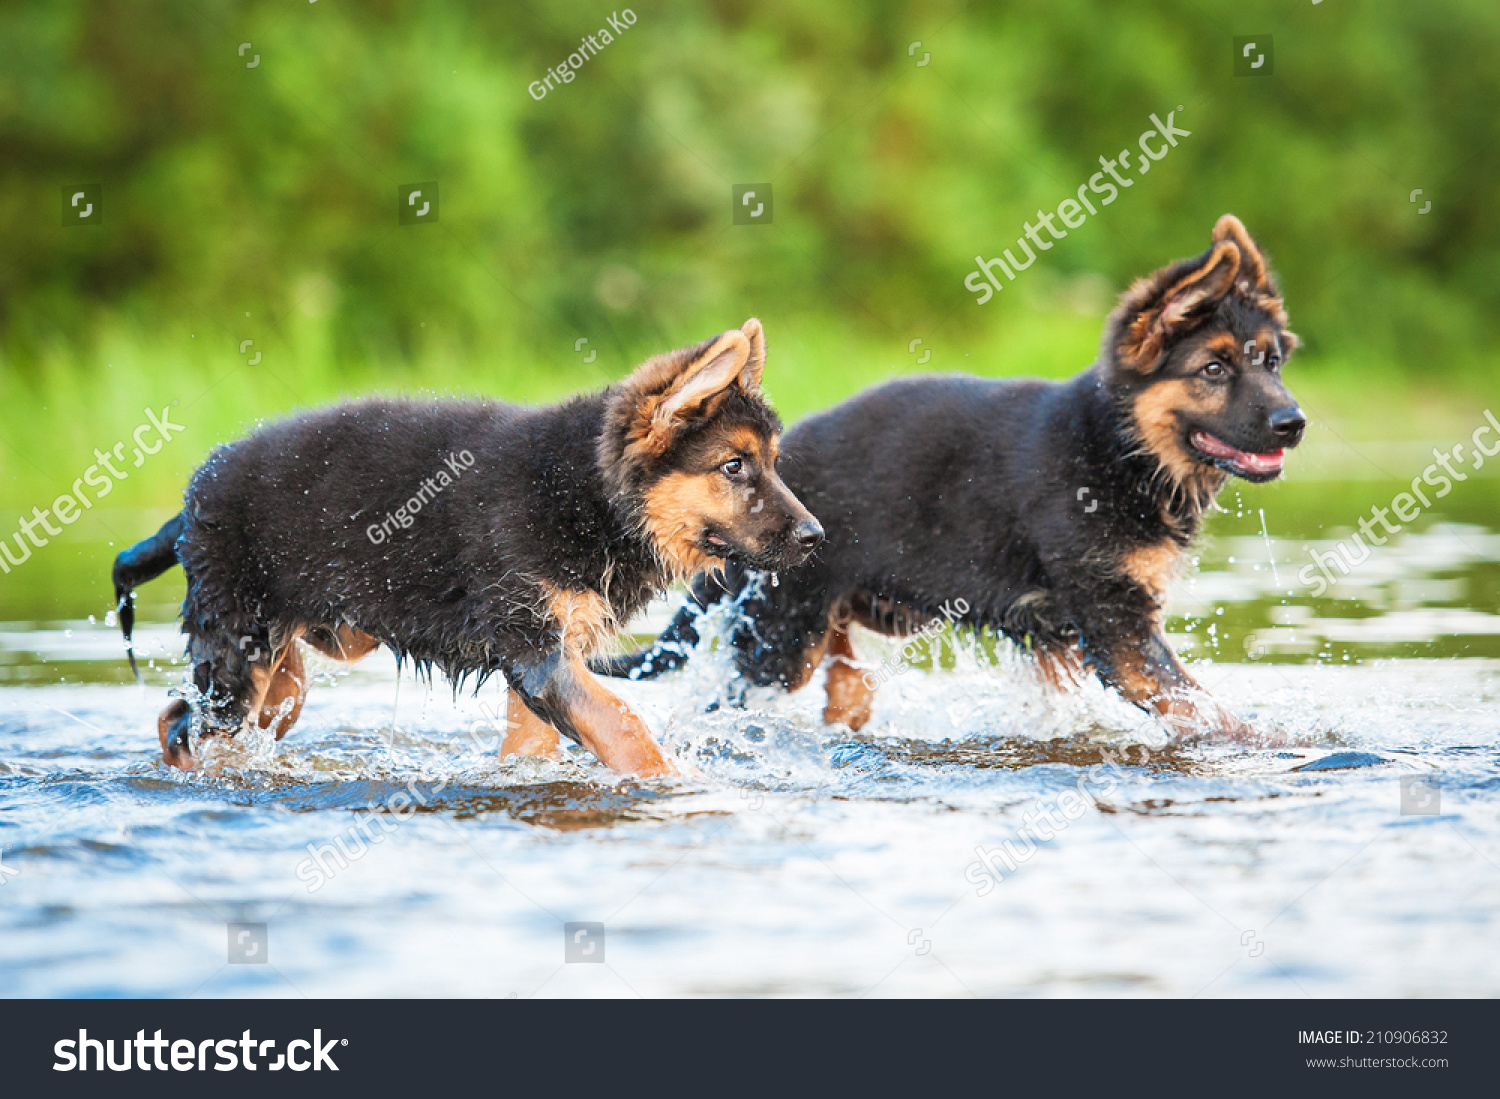 Royalty Free German Shepherd Puppies Running In Water 210906832